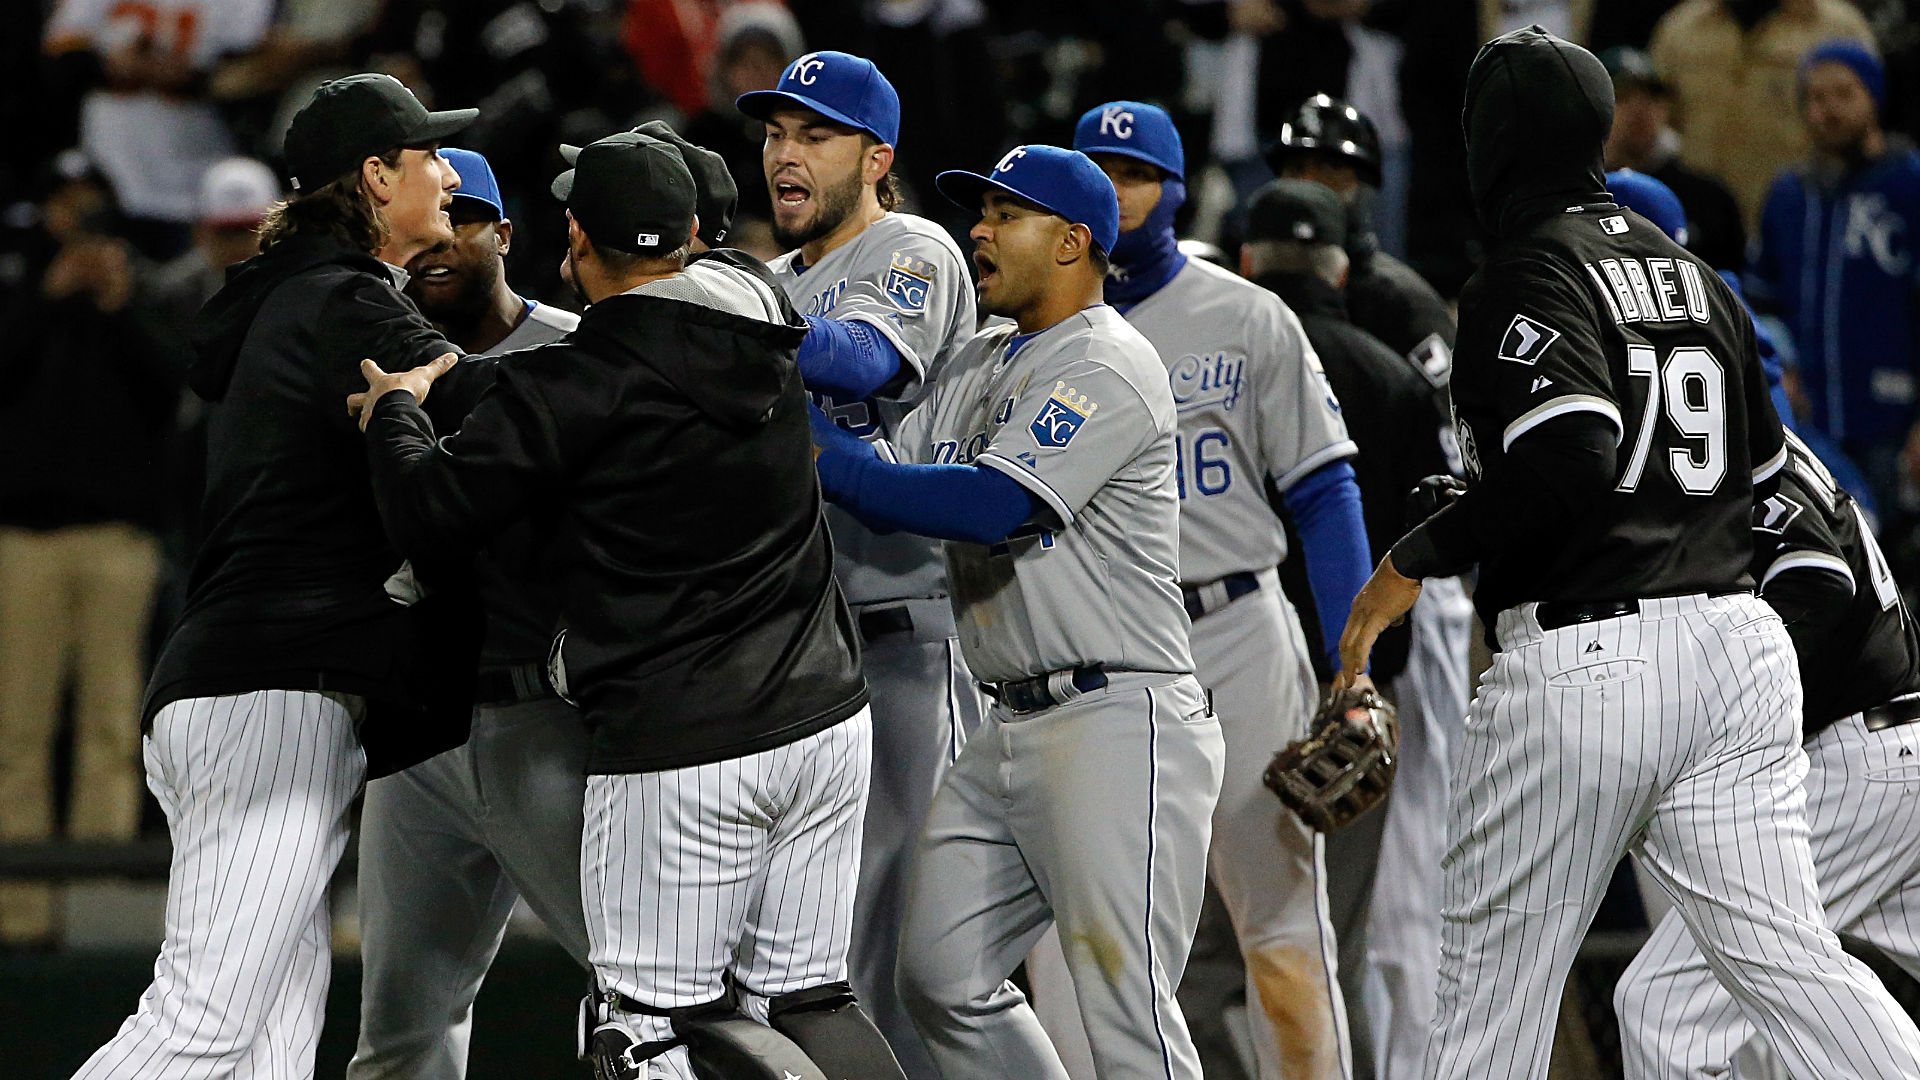 Four Royals, two White Sox suspended after Thursday night's brawl